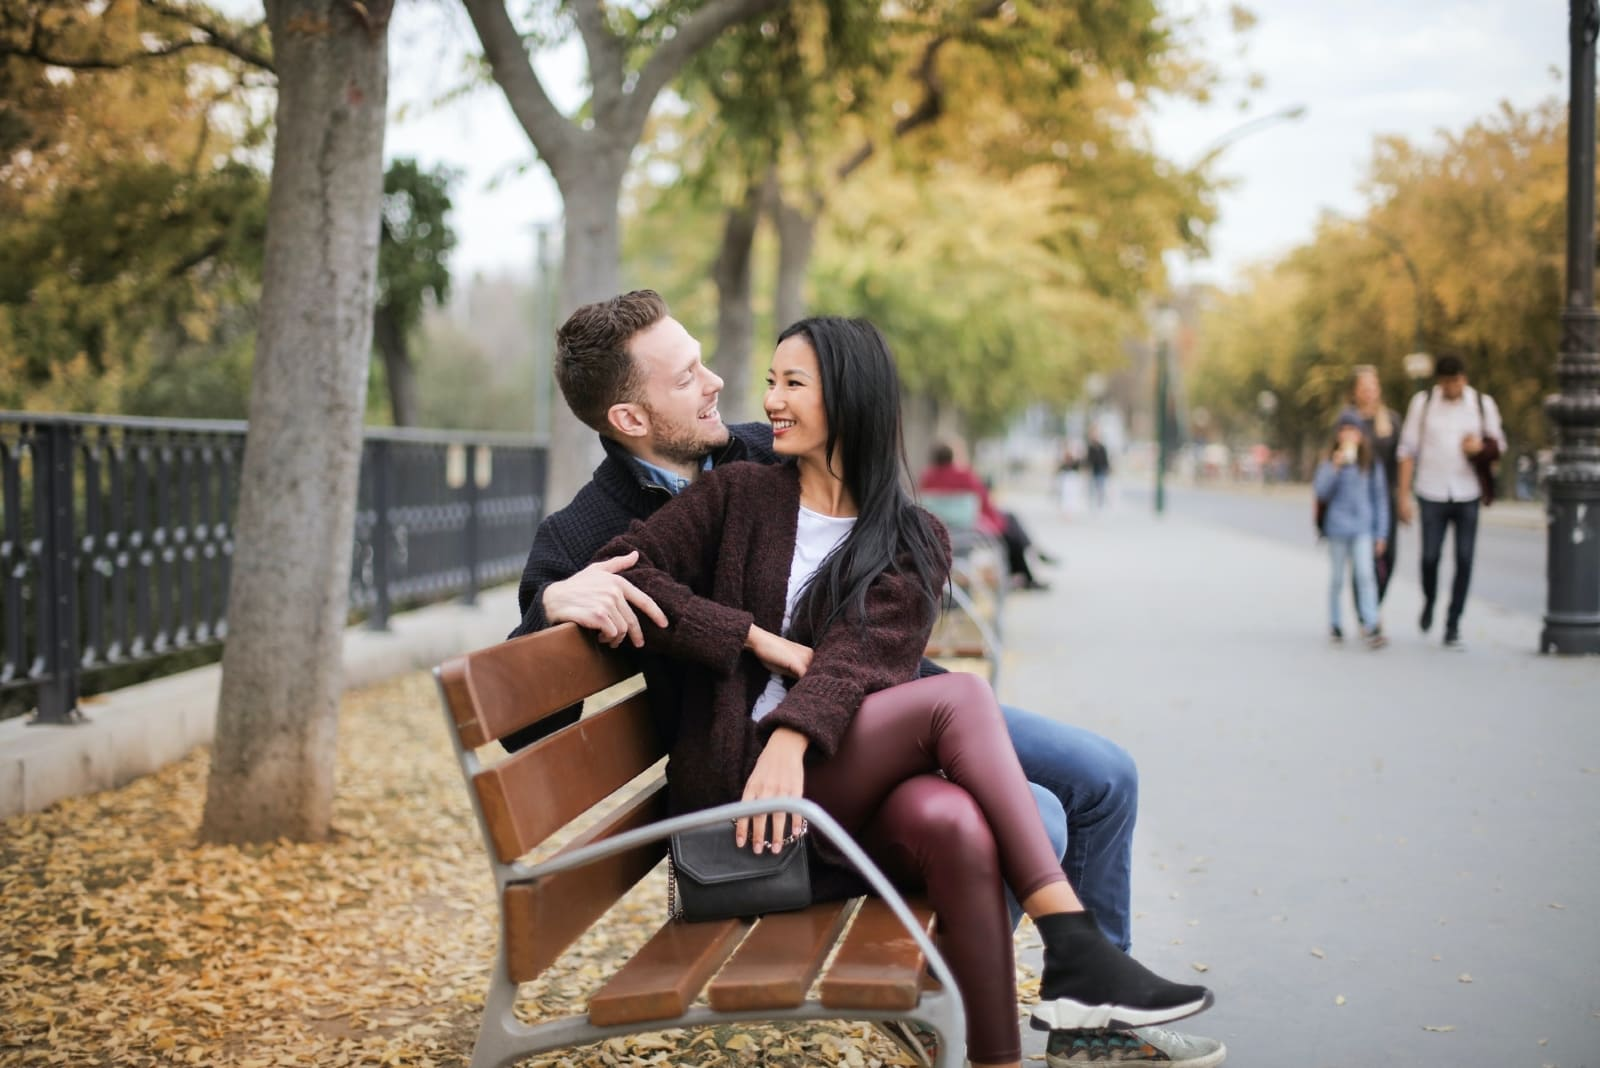 man and woman smiling while sitting on wooden bench